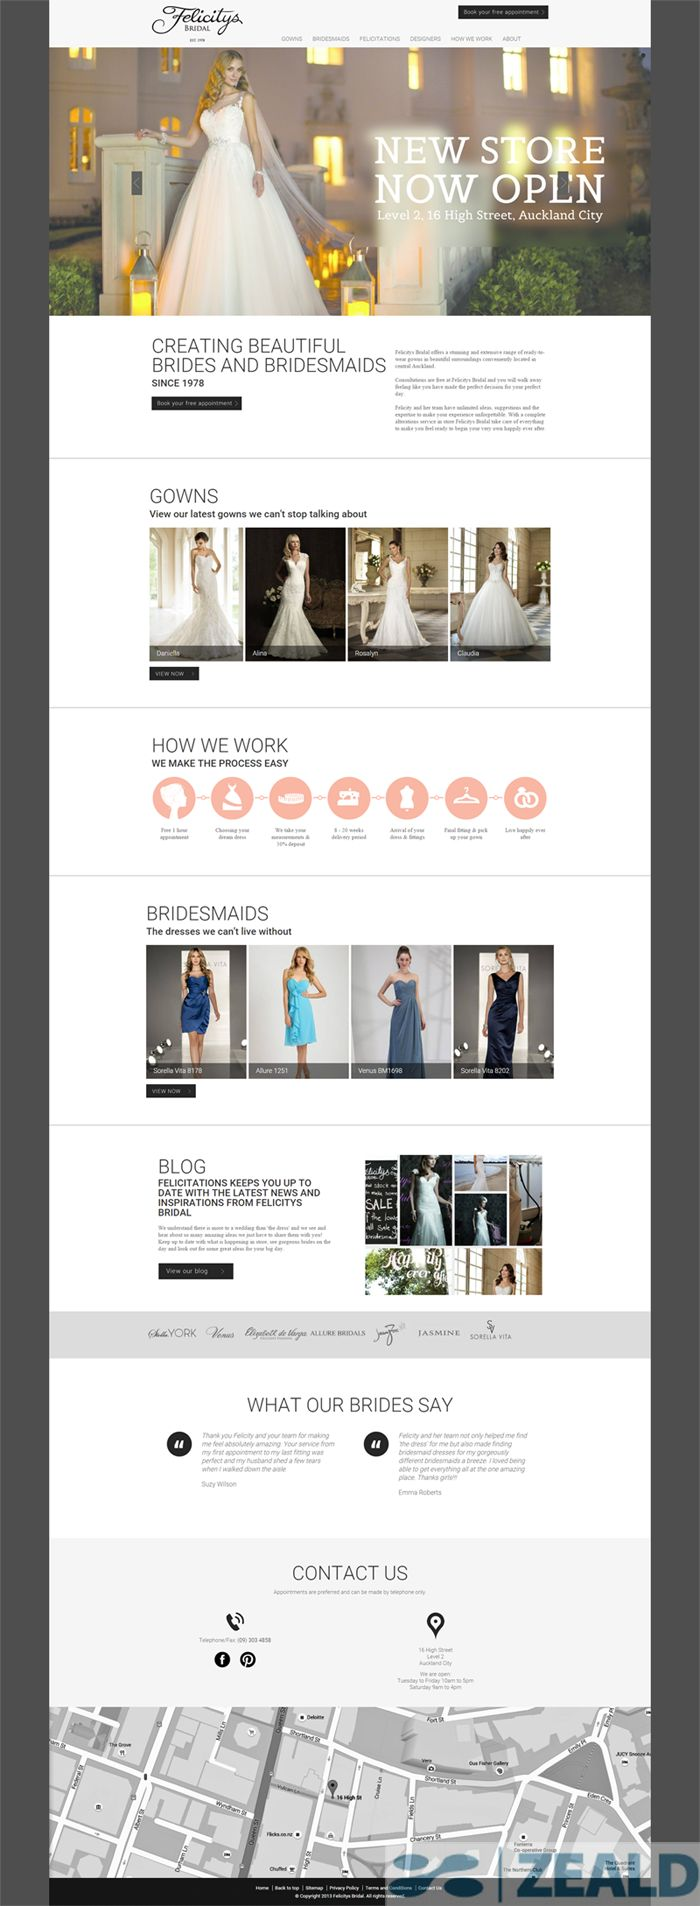 Felicitys Bridal  - The art and science of good #websitedesign #website #websiteredesign #webdesign #designinsperation #rethinkyourwebsite #layout #redesign #redesignideas #redesigninspiration #creative #landingpages #beforeafter #responsive #leadgeneration #ecommerce